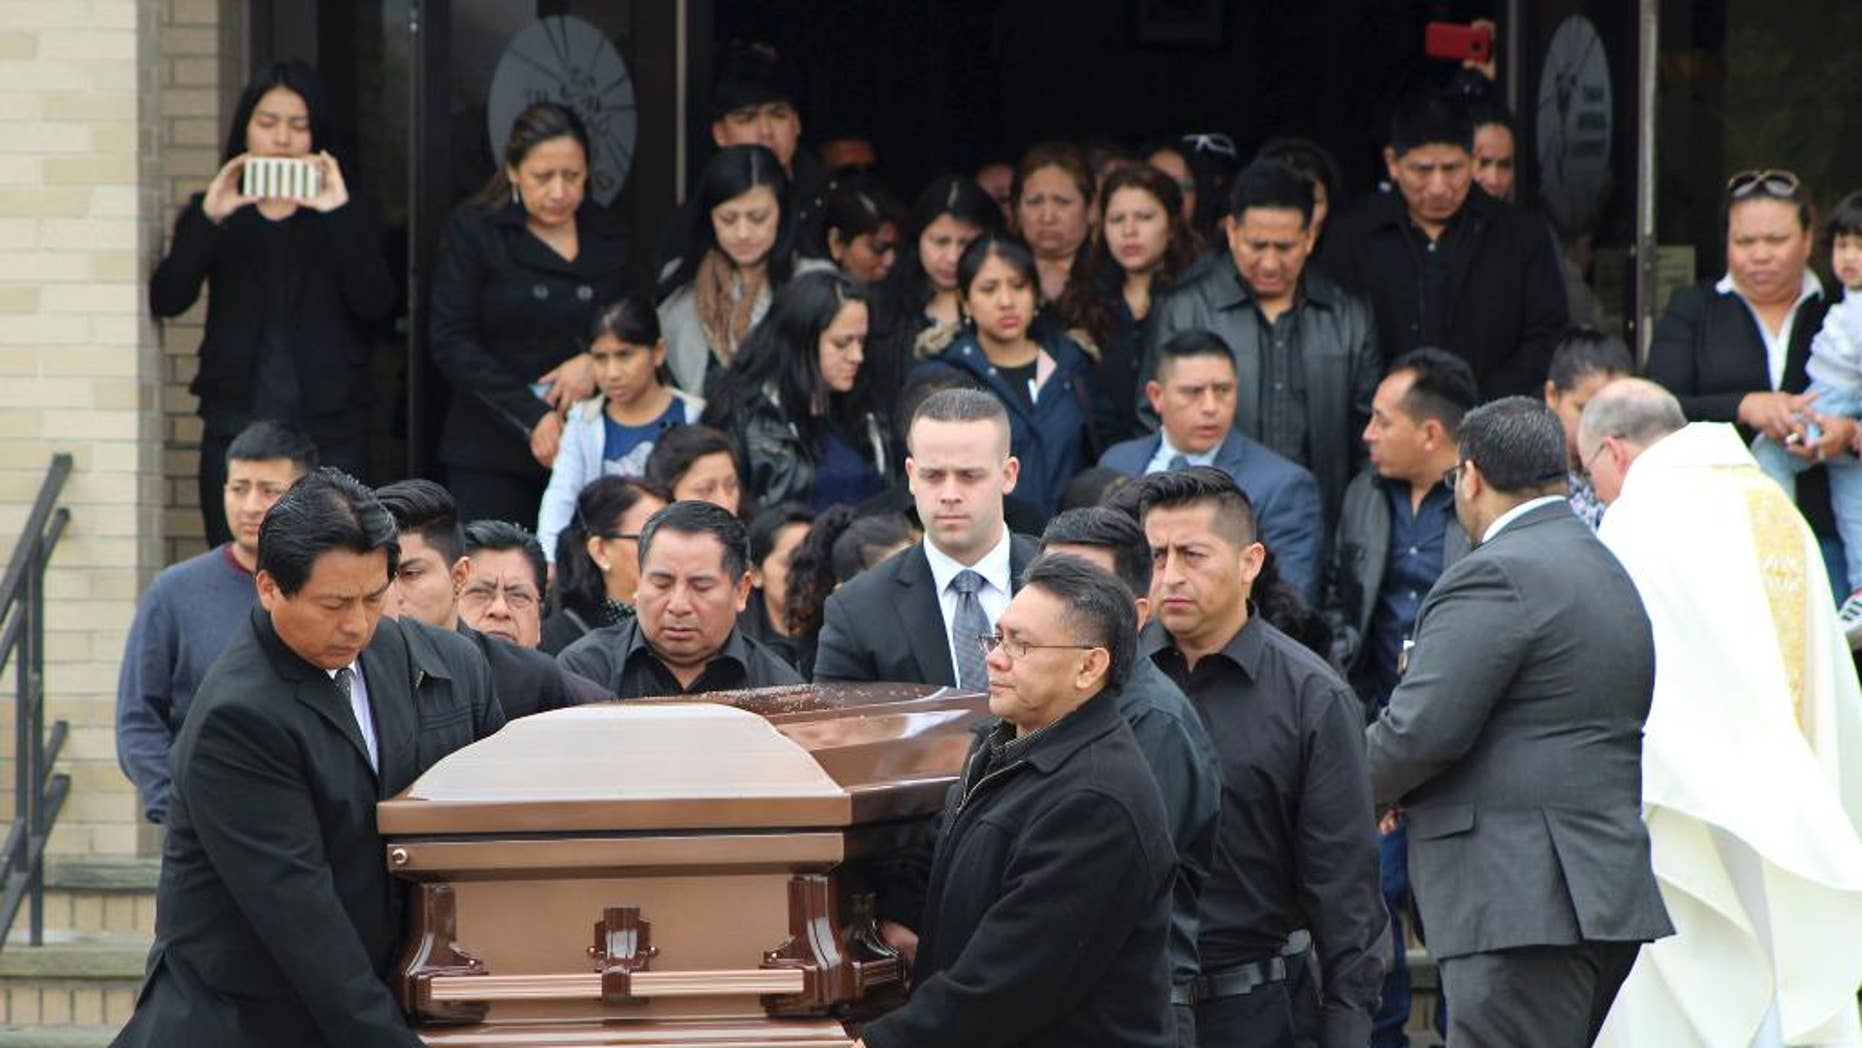 FILE - In this April 19, 2017 file photo, the casket of Justin Llivicura is carried from St. Joseph the Worker Church after Llivicura's funeral in East Patchogue, N.Y. Llivicura, 16, was one of four young men found slain in a suspected MS-13 gang killing in a park in Central Islip, N.Y., on April 12. The gang has been blamed for the deaths of nearly a dozen young people in blue-collar Brentwood and Central Islip since the school year began. (AP Photo/Frank Eltman, File)